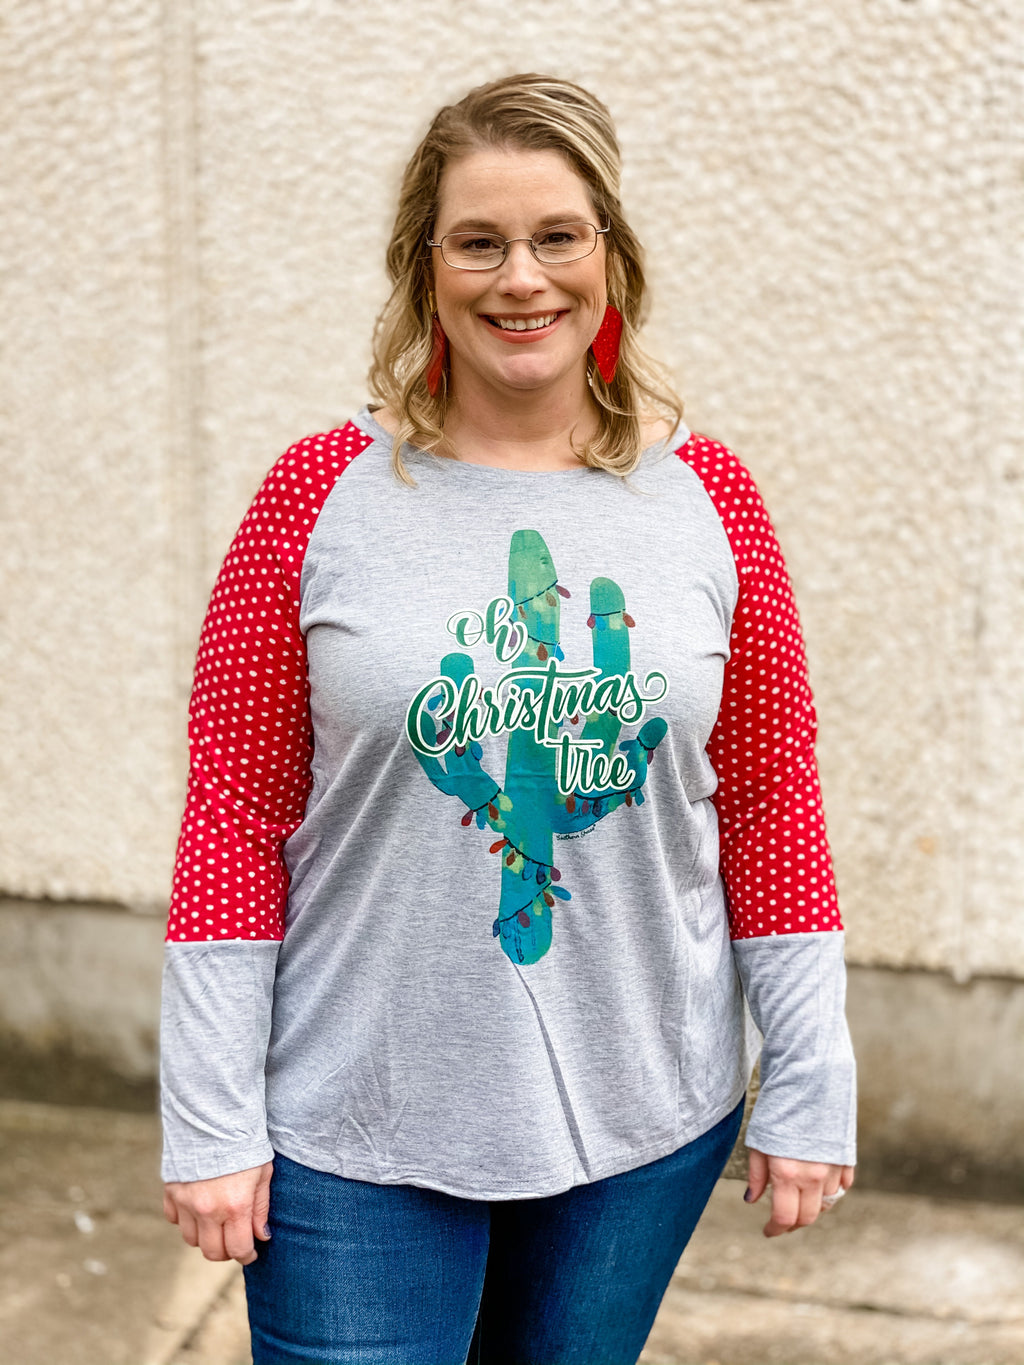 Oh Christmas Tree Cactus Polka Dot Accent Tee Elle and Co Boutique